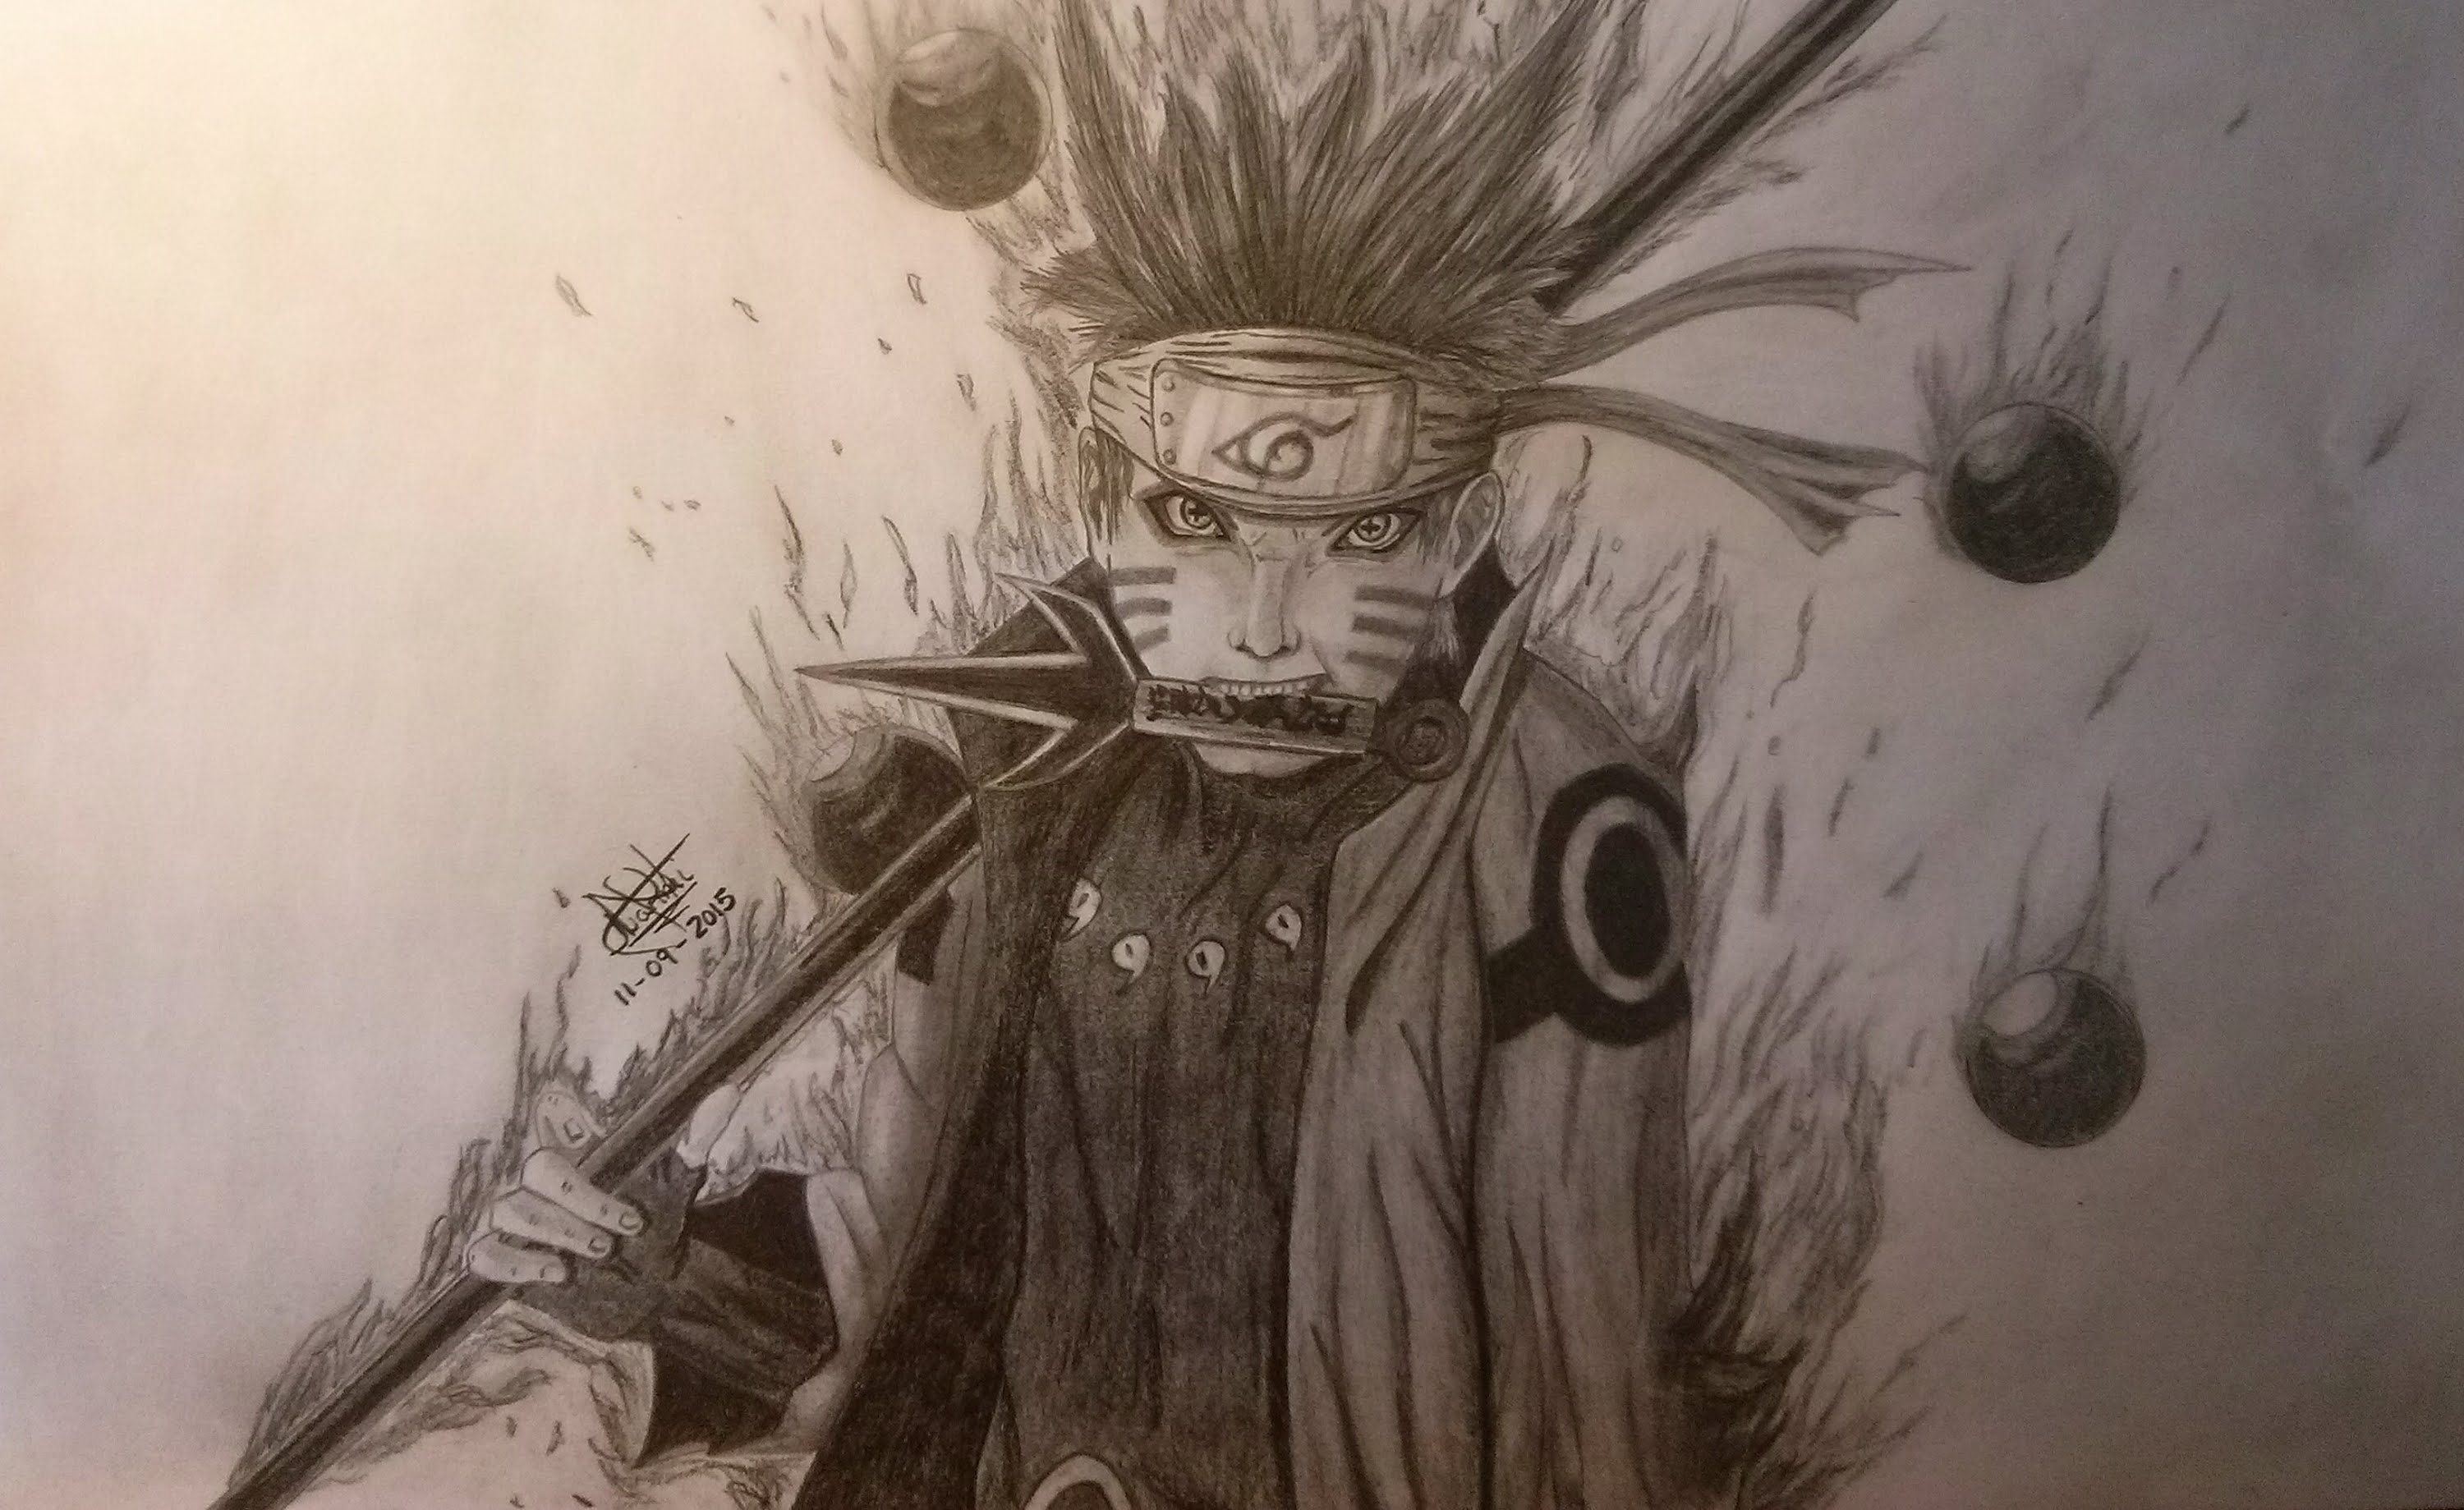 Drawn naruto naruto uzumaki YouTube DRAWING: Naruto SPEED realismo